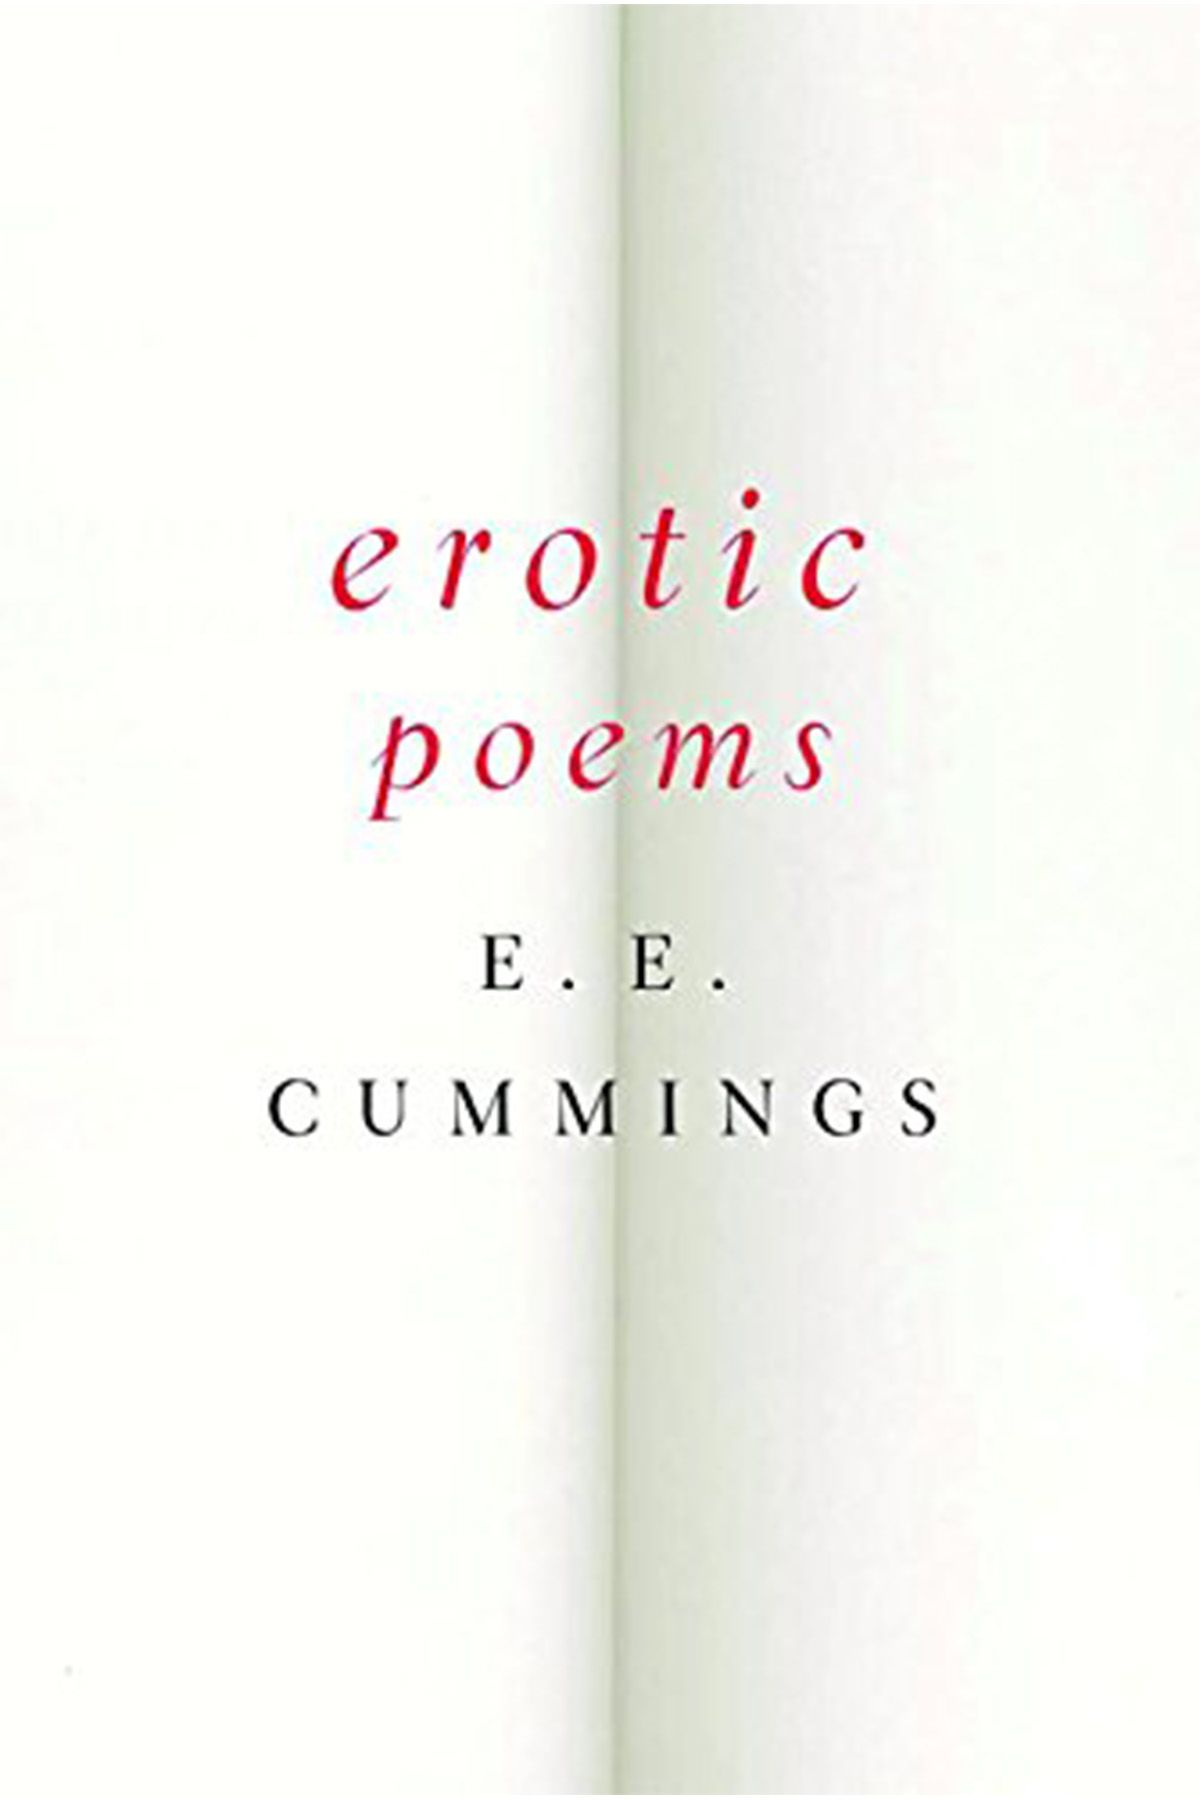 'Erotic Poems' by E. E. Cummings